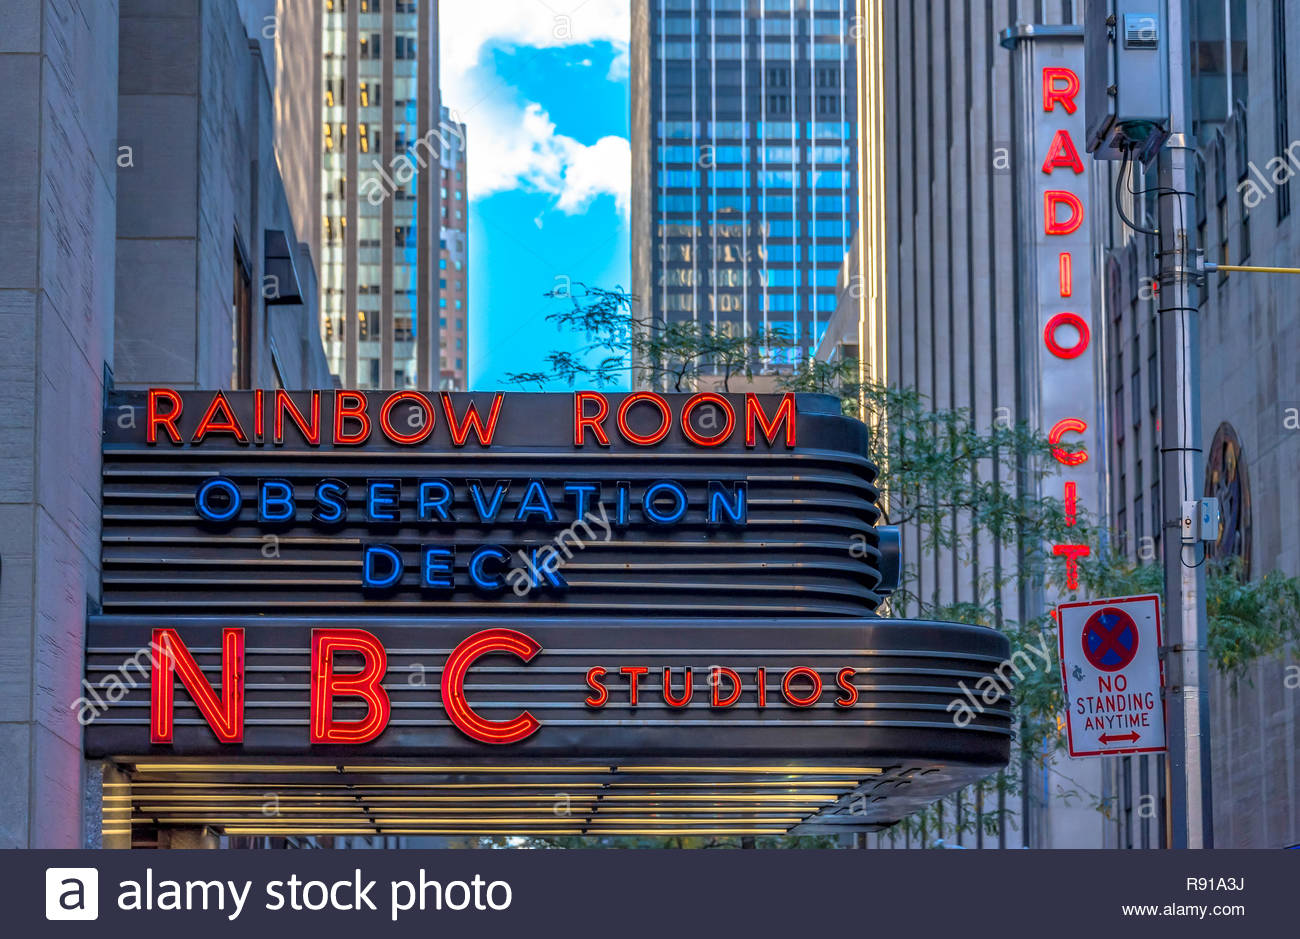 Nbc Studios In New York City Historic 30 Rockefeller Plaza In Midtown Manhattan Is Home To Nbc Studios An Observation Deck And A Nightclub Rainbow Stock Photo Alamy